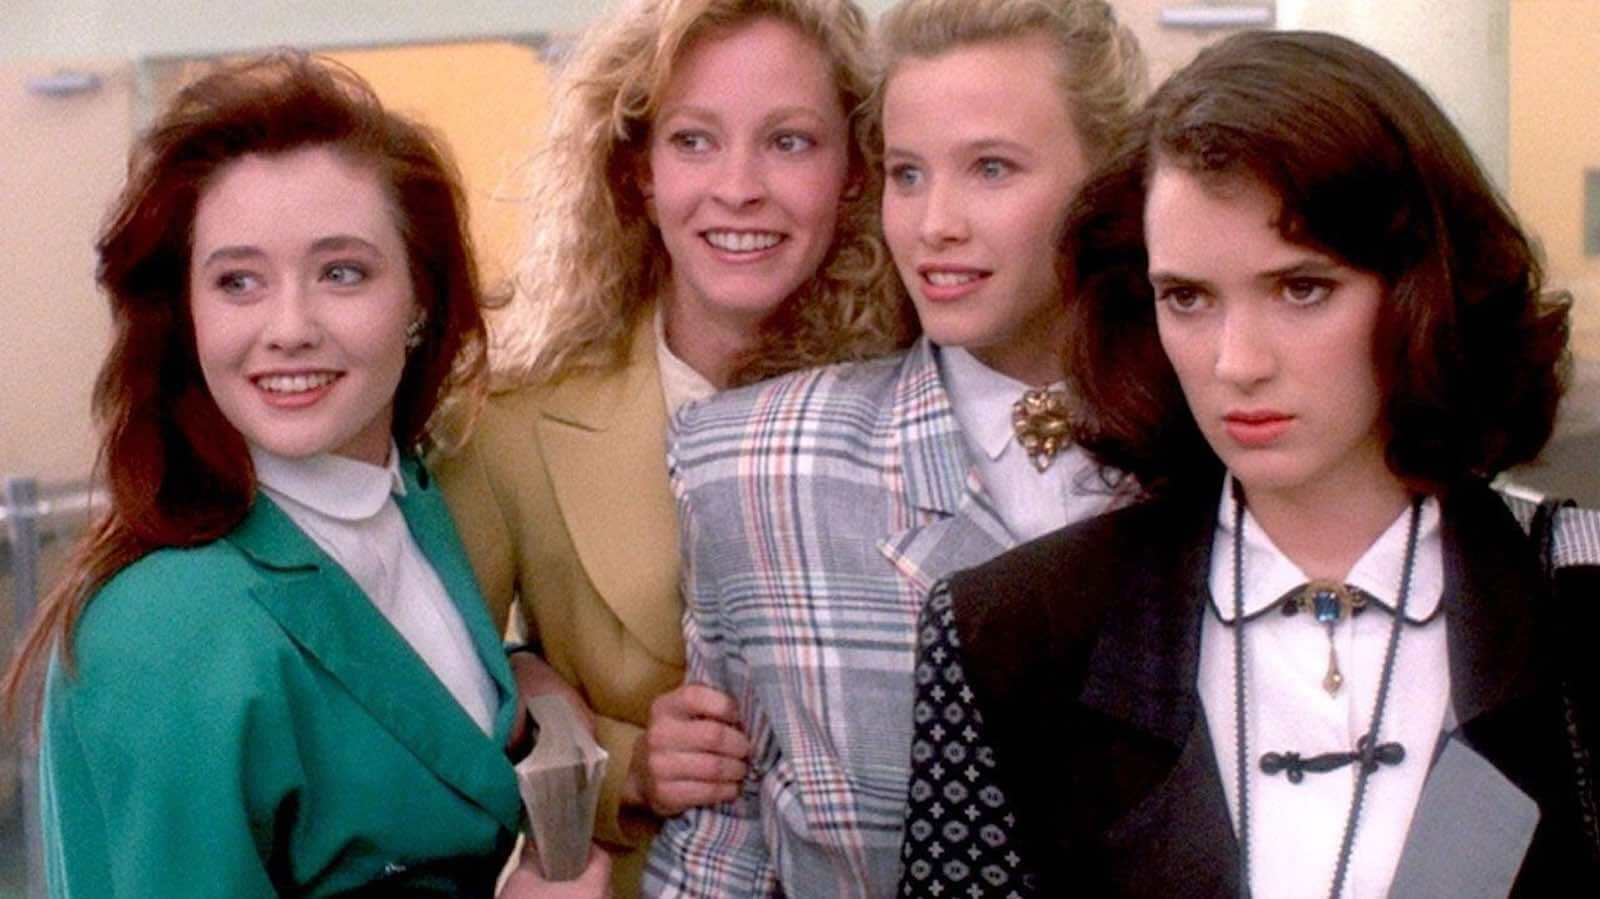 Dark Comedy Movies - Heathers